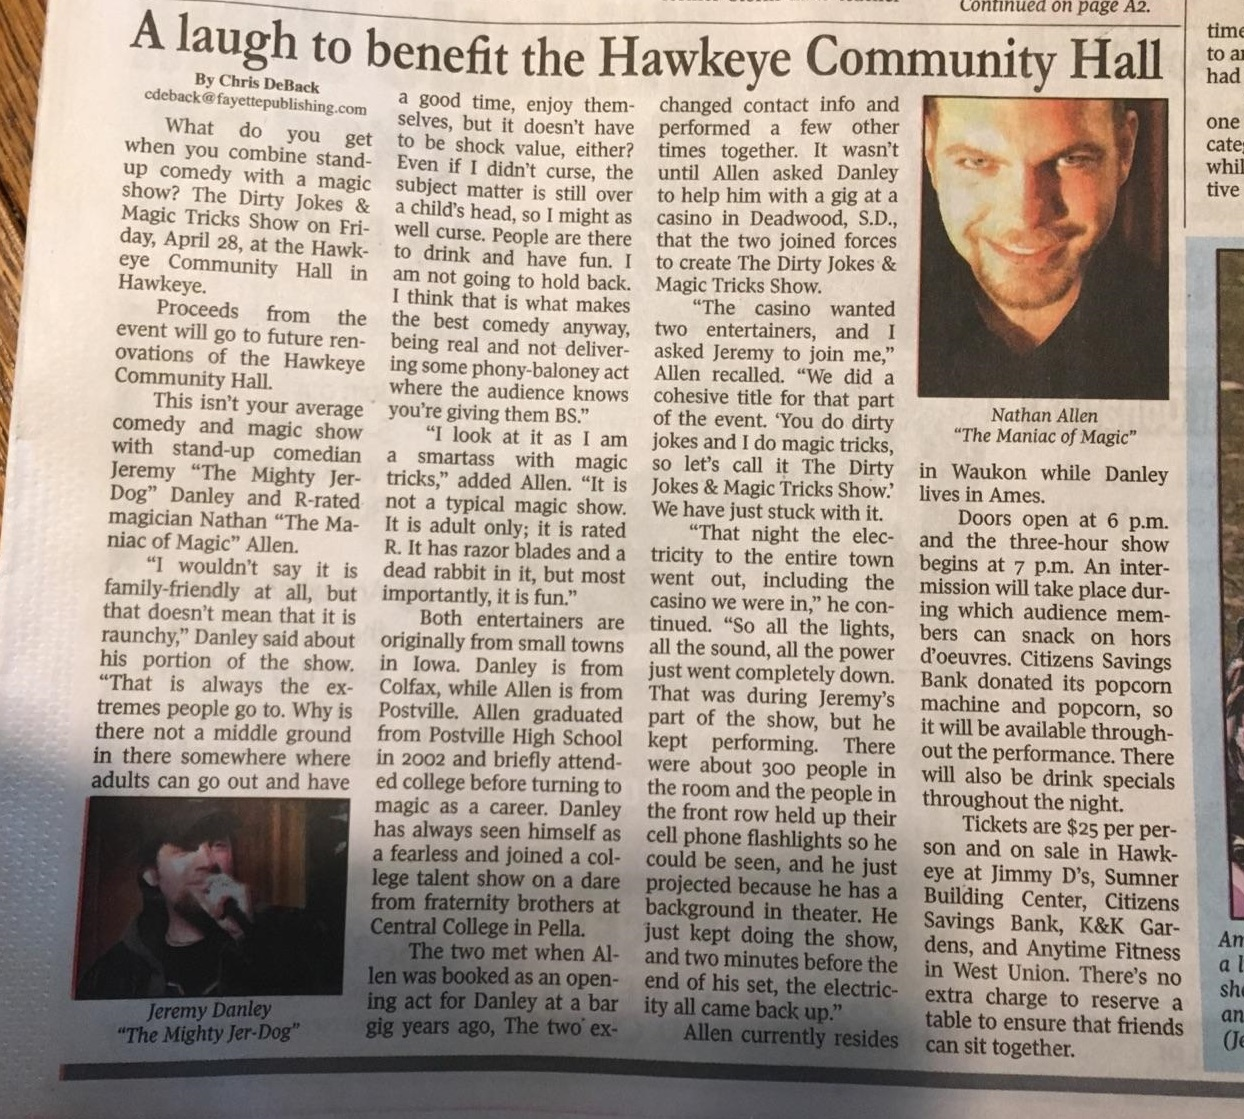 2017.04.28 Hawkeye Iowa comedy magic show article